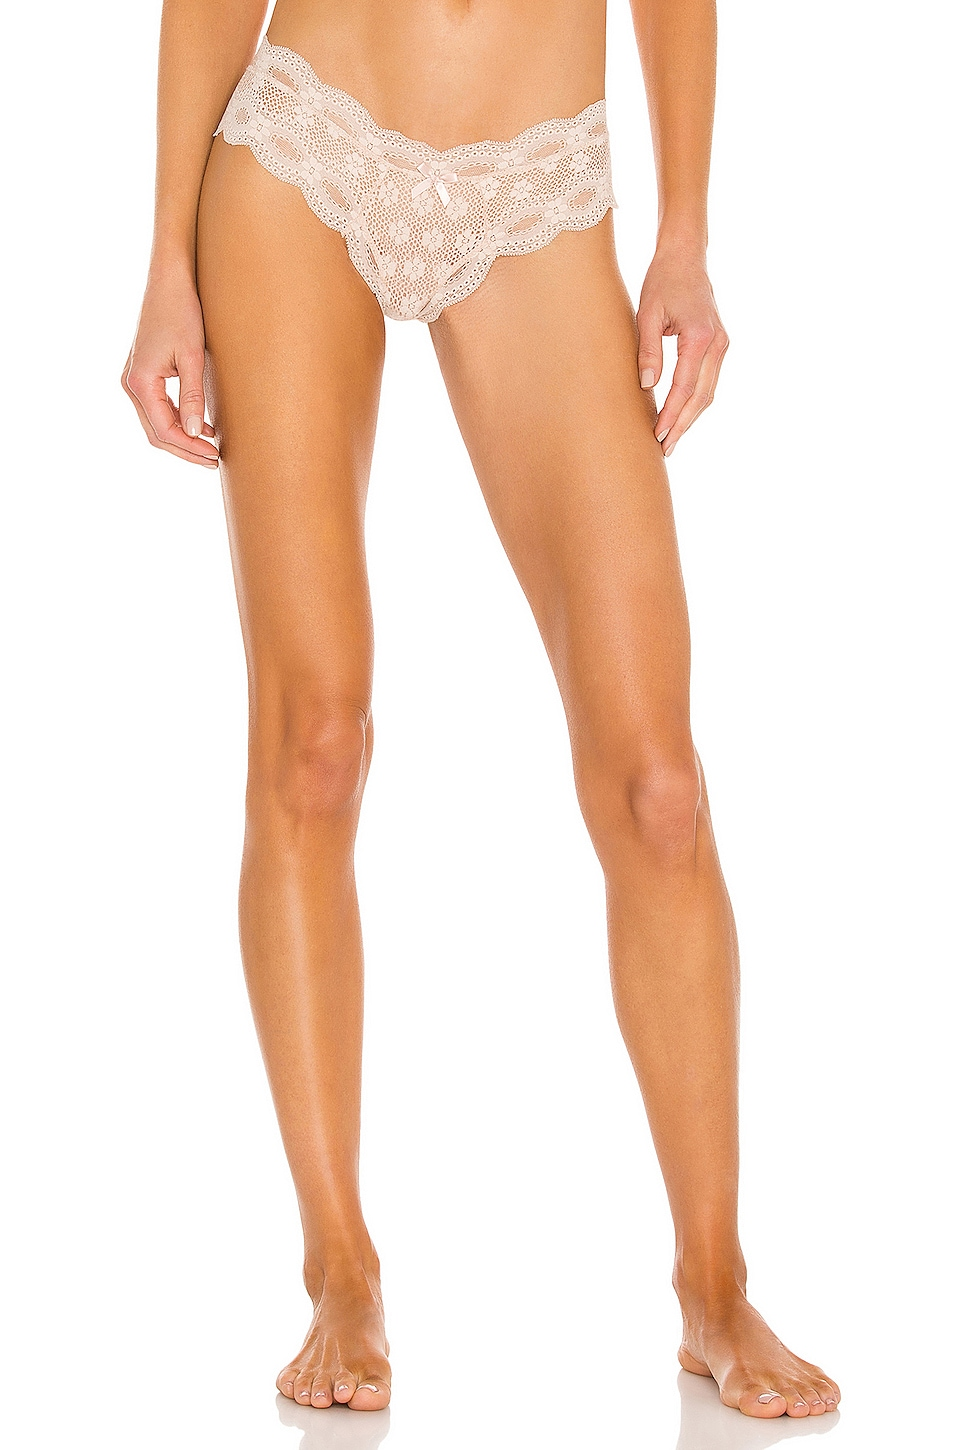 eberjey India Lace Low Rise Thong in Bare